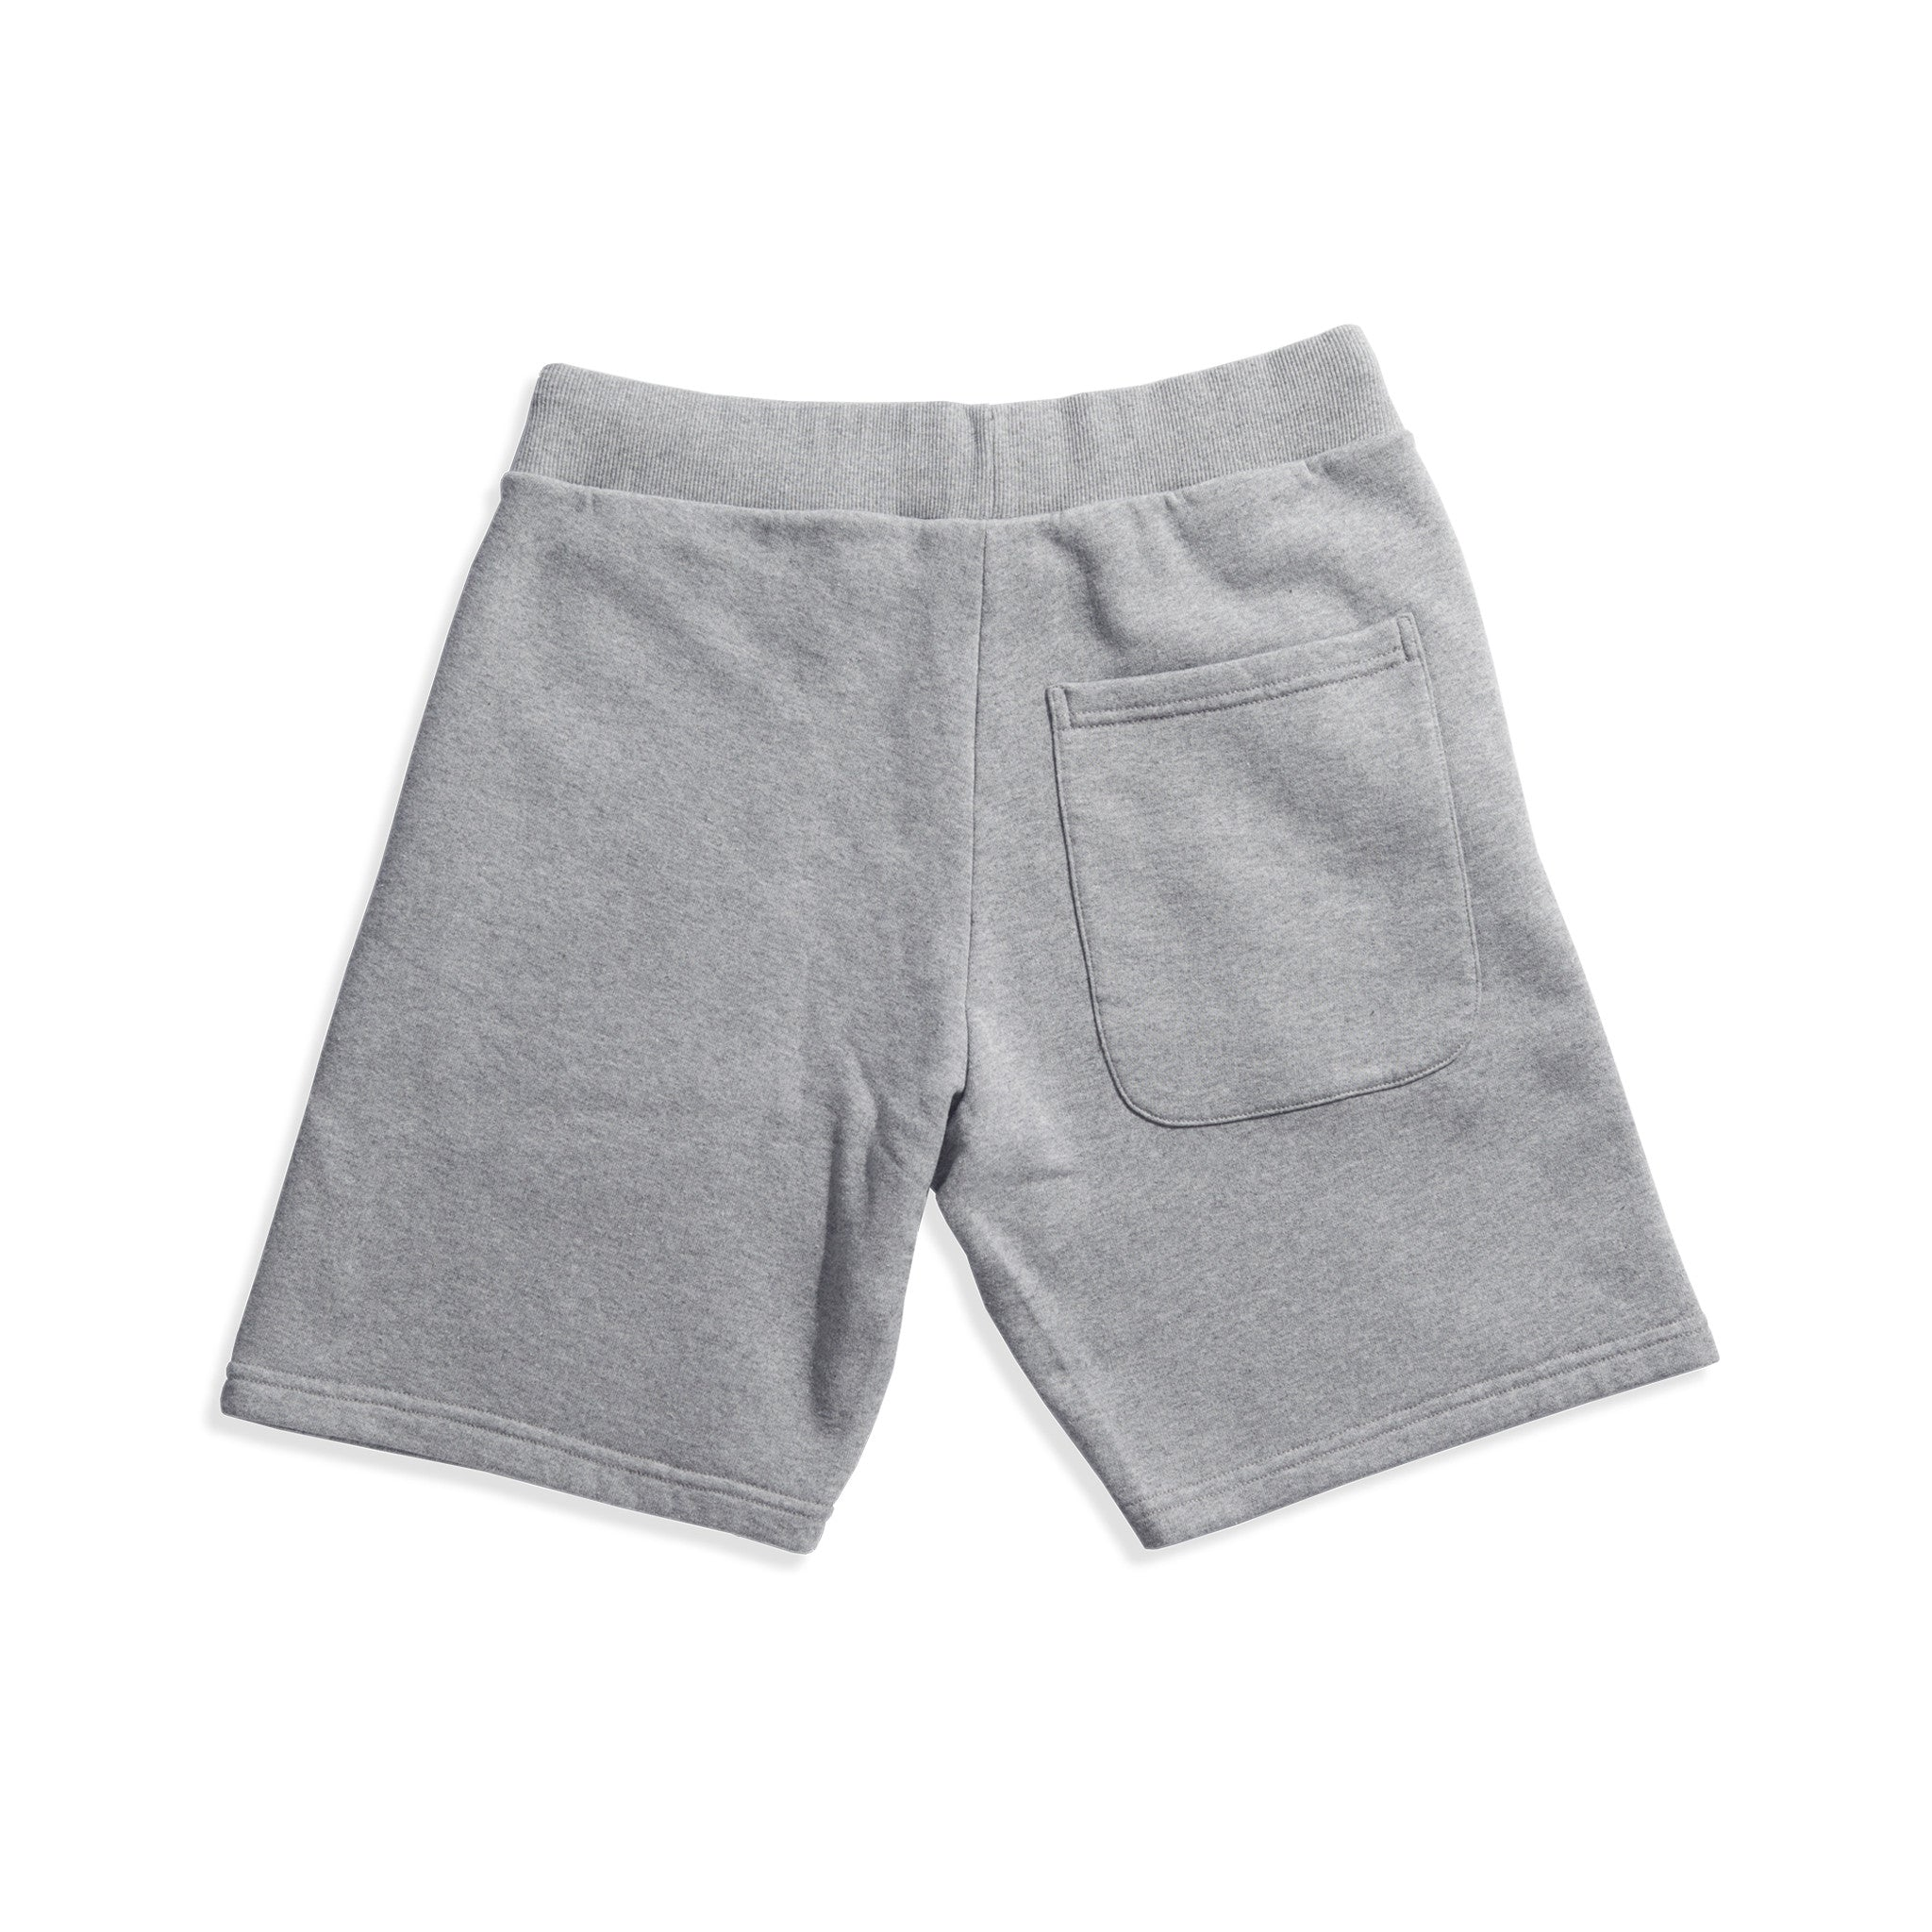 IFFY NY Cooper shorts in grey